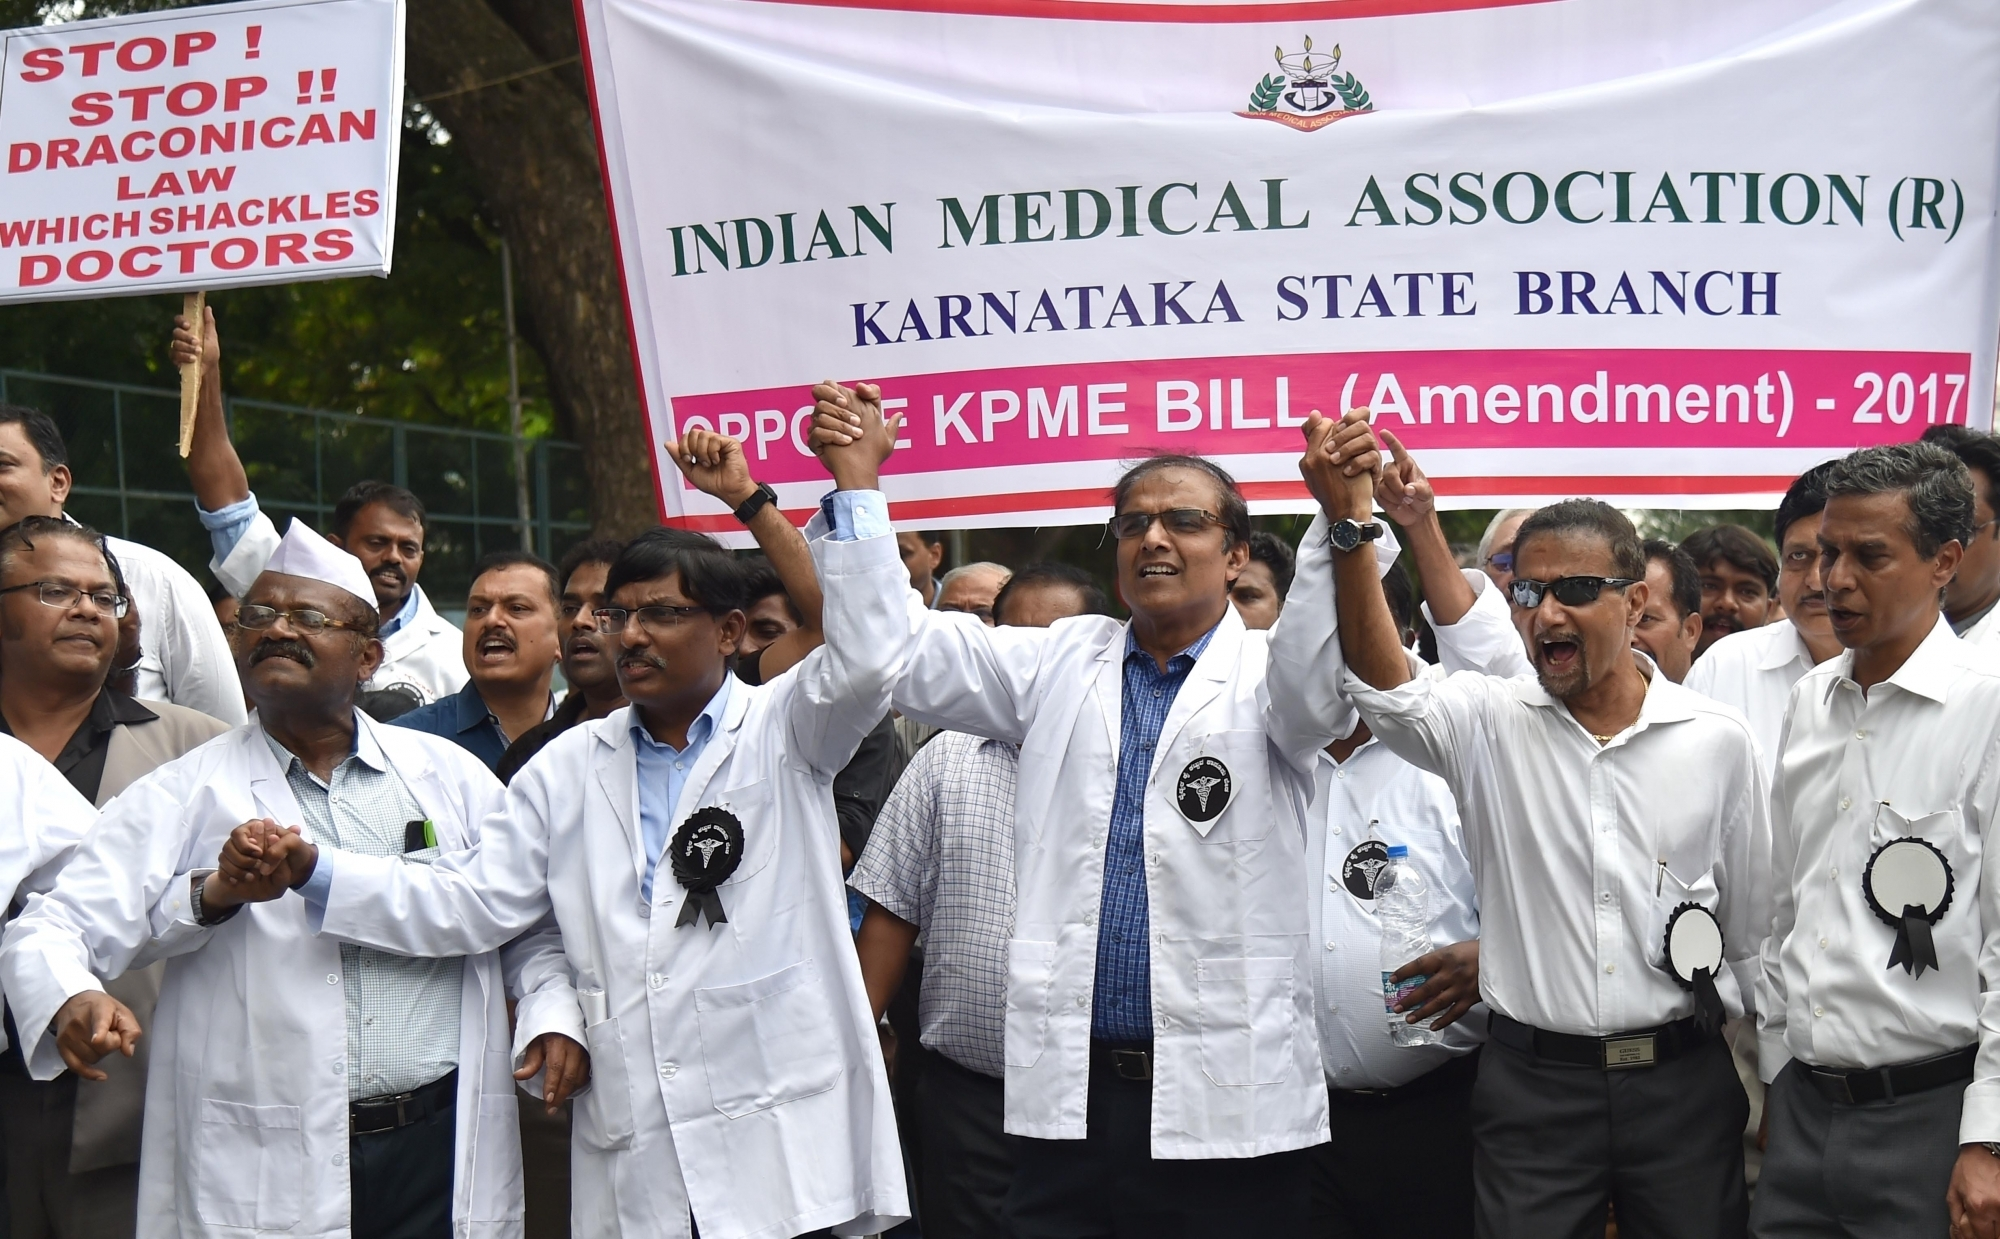 Doctors and healthcare professionals stage a demonstration against proposed amendments to the Karnataka Private Medical Establishments (KPME) Act, in Bengaluru on June 16, 2017. (Photo: IANS)